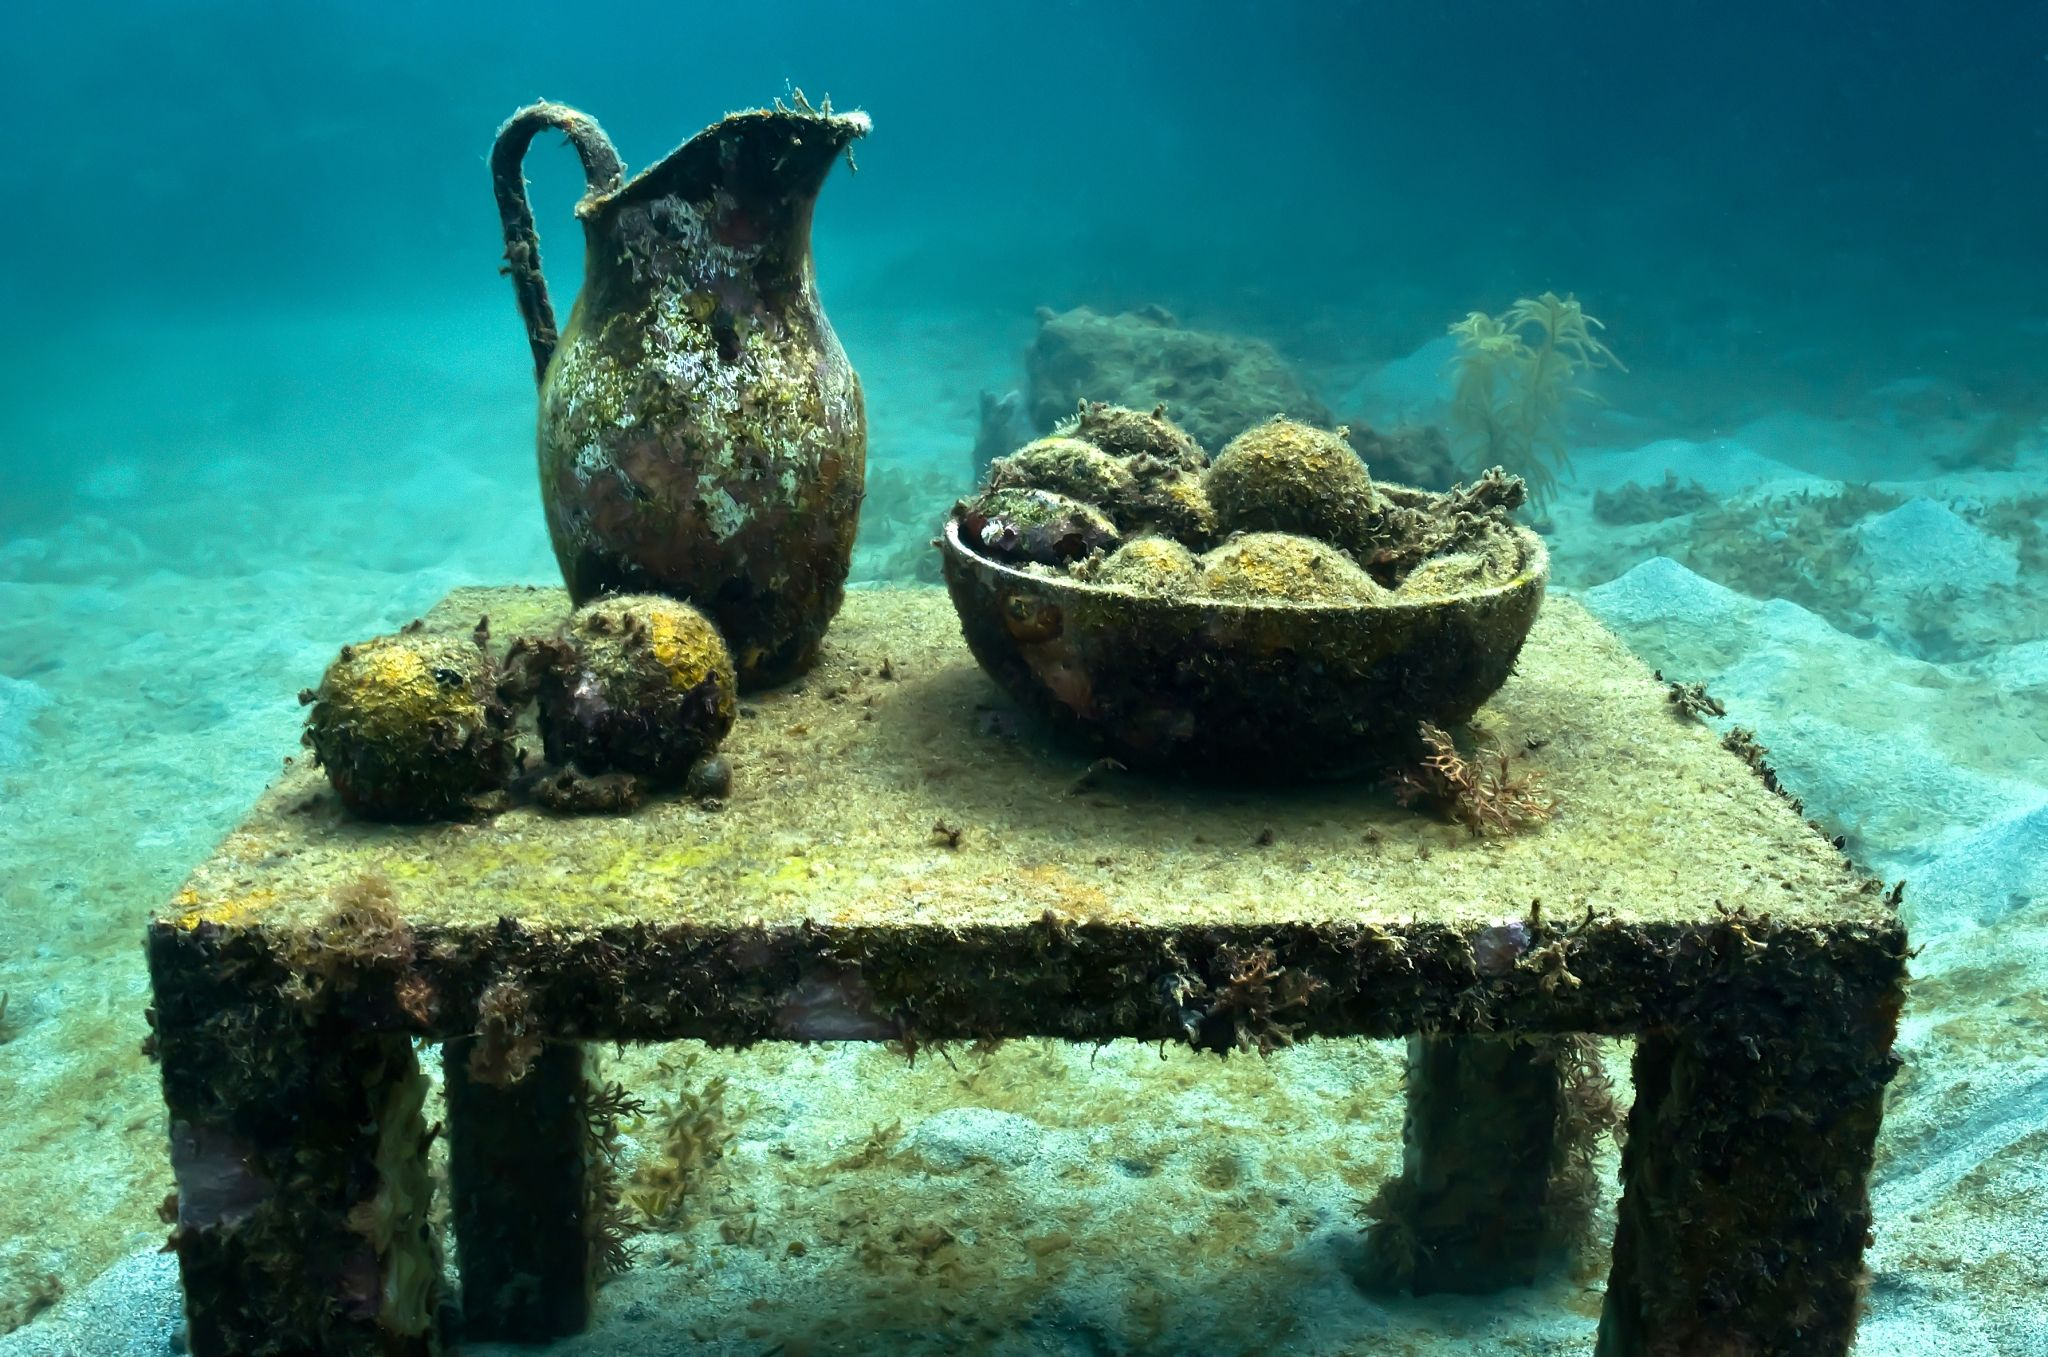 un still life underwater sculpture by jason decaires taylor un still life underwater sculpture by jason decaires taylor